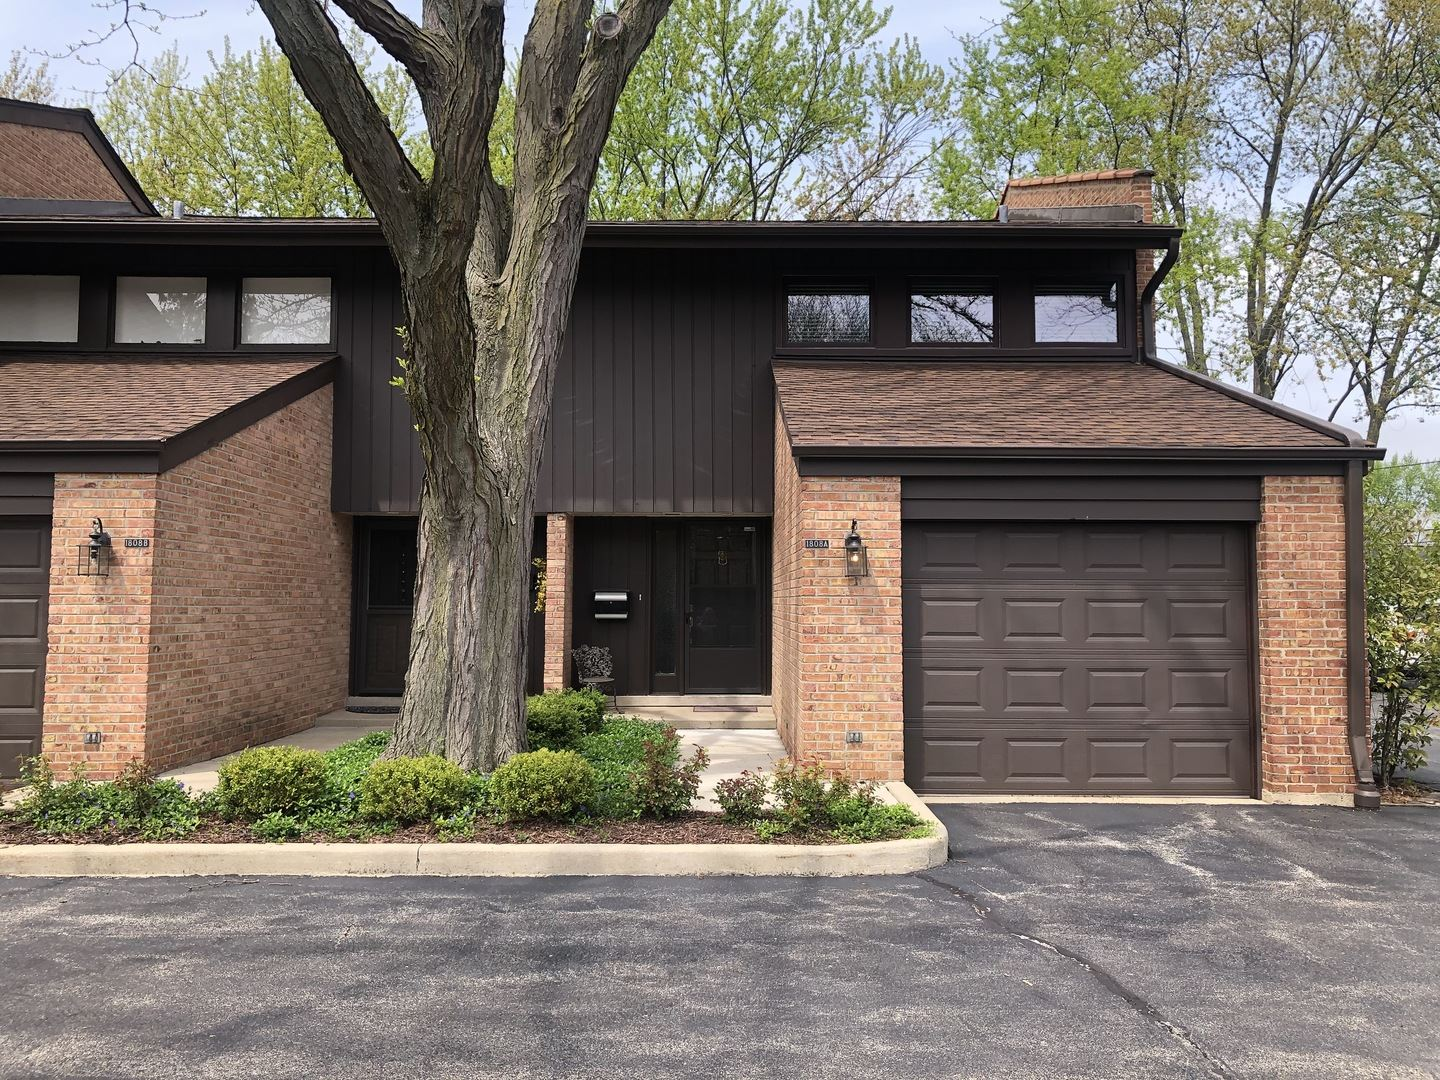 1808 Wildberry Drive #A, Glenview, IL 60025 - #: 10775113